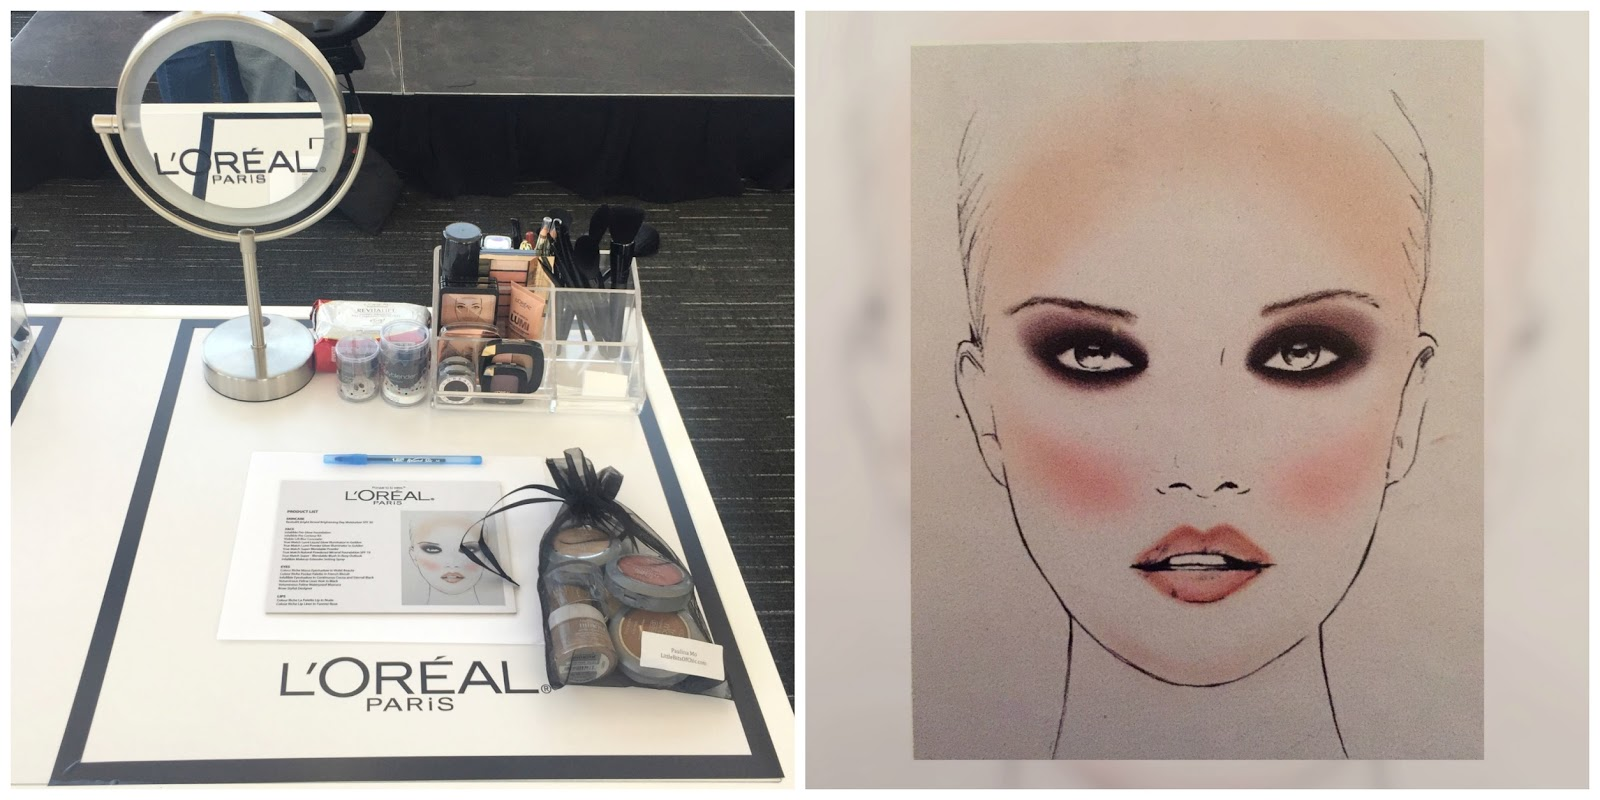 L'Oréal event 2016, L'Oréal make up to try, make up class